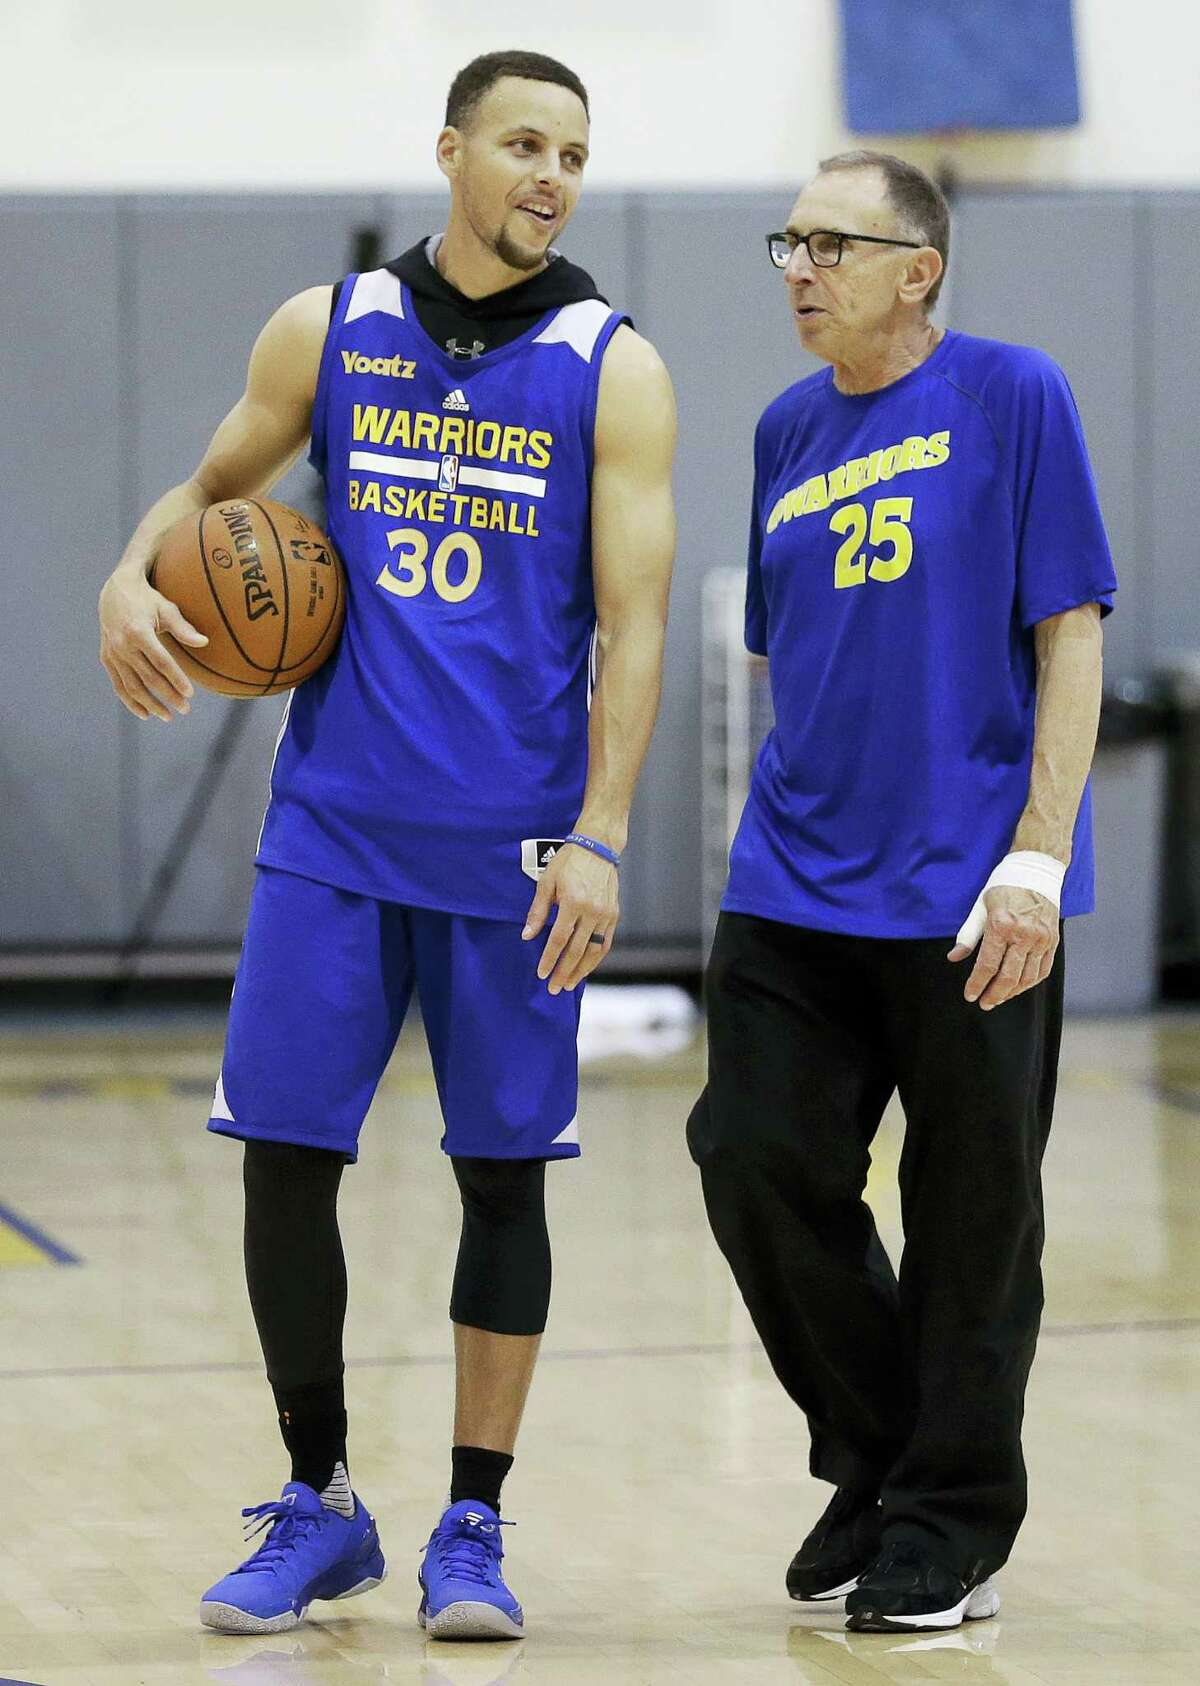 Stephen Curry, left, speaks with assistant coach Ron Adams during a recent practice. The Warriors play the Oklahoma City Thunder in Game 1 of the Western Conference finals on Monday.